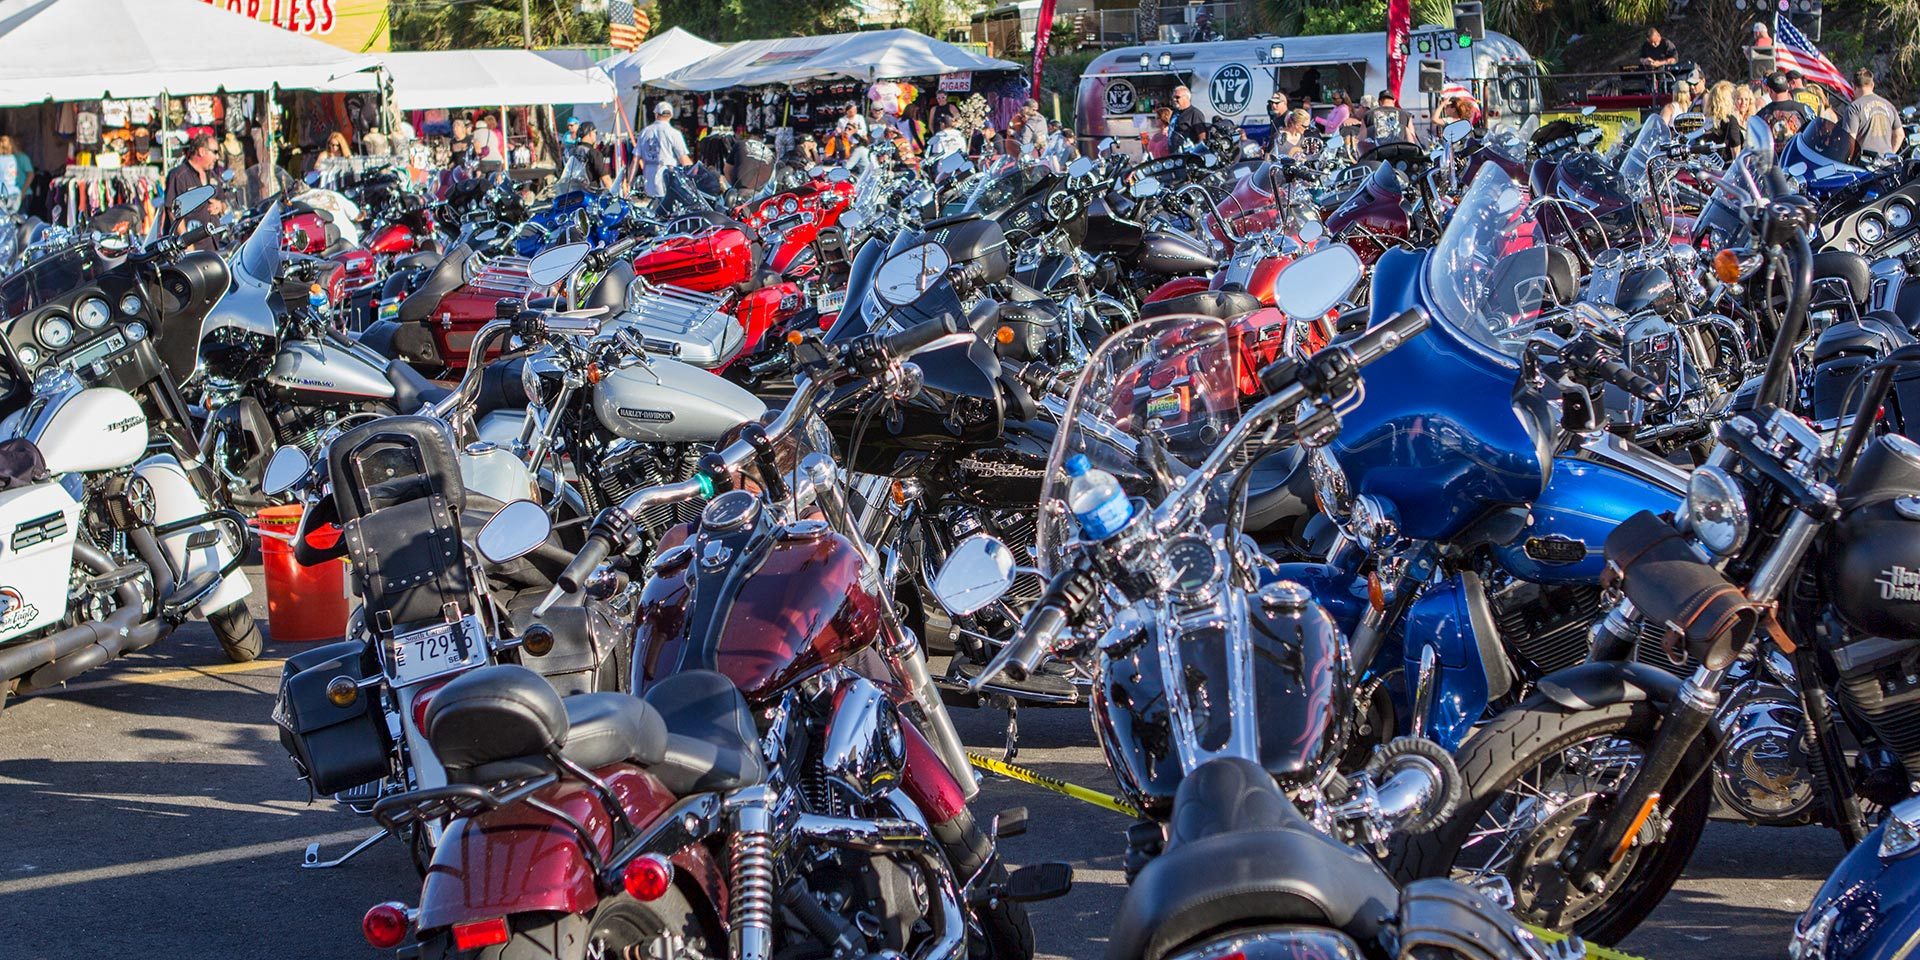 Panama City Beach Motorcycle Rally® | 2018 Panama City Beach Rally Venues